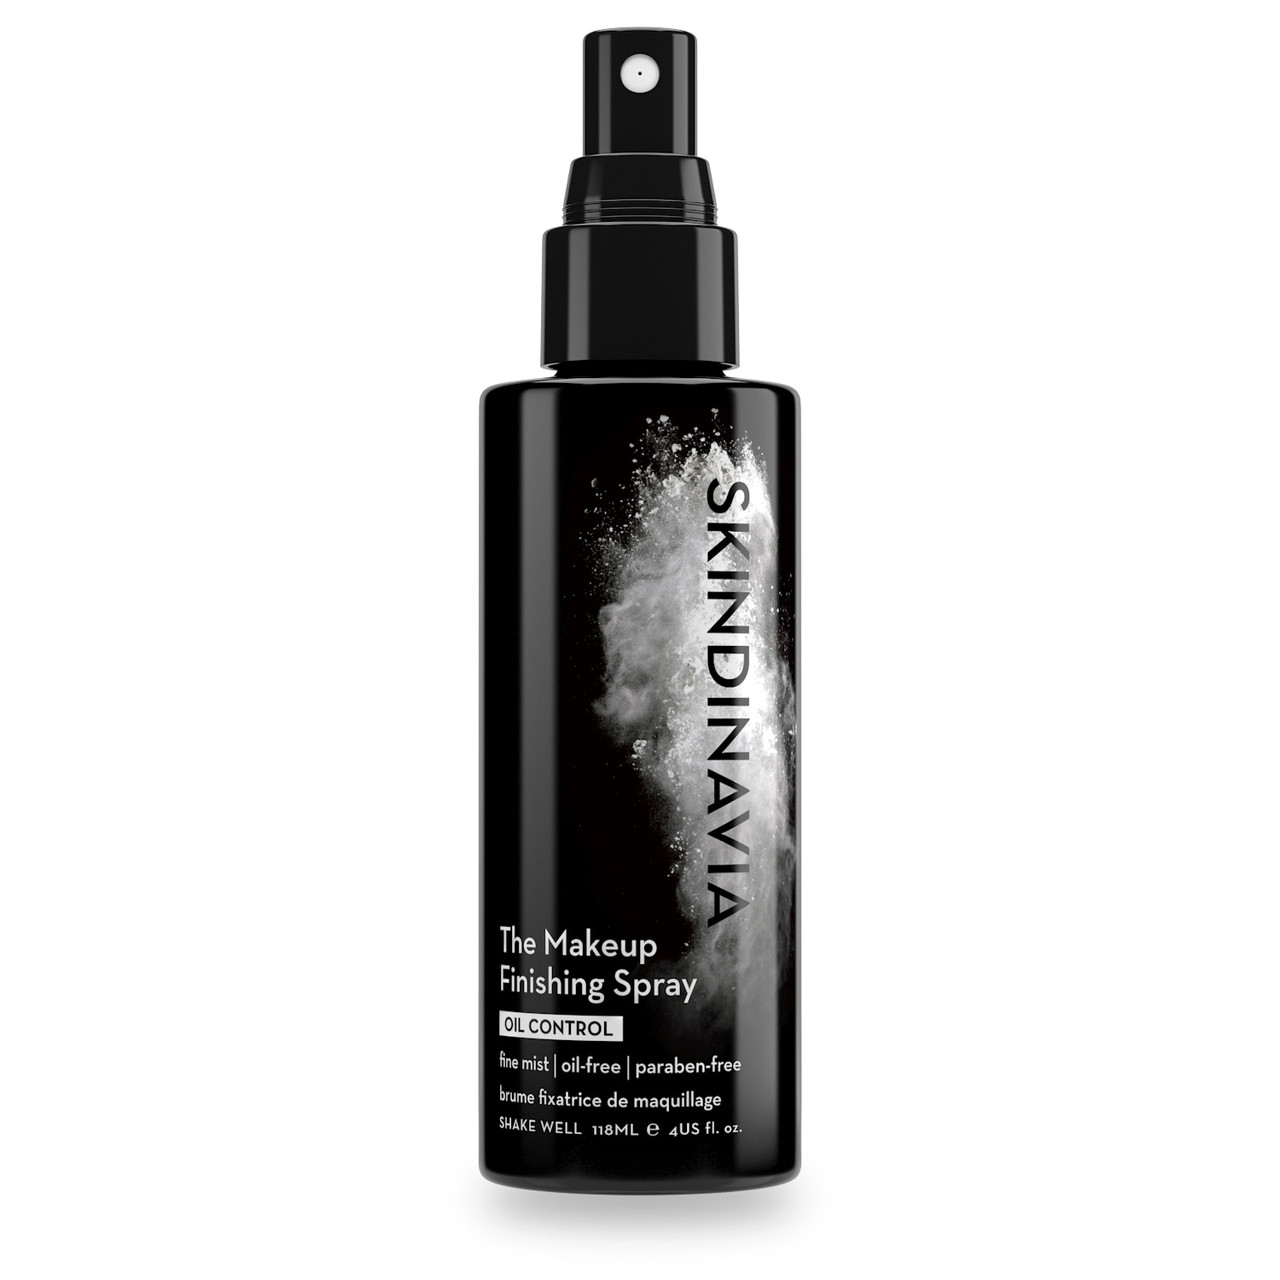 The Makeup Finishing Spray Oil Control by Skindinavia #17